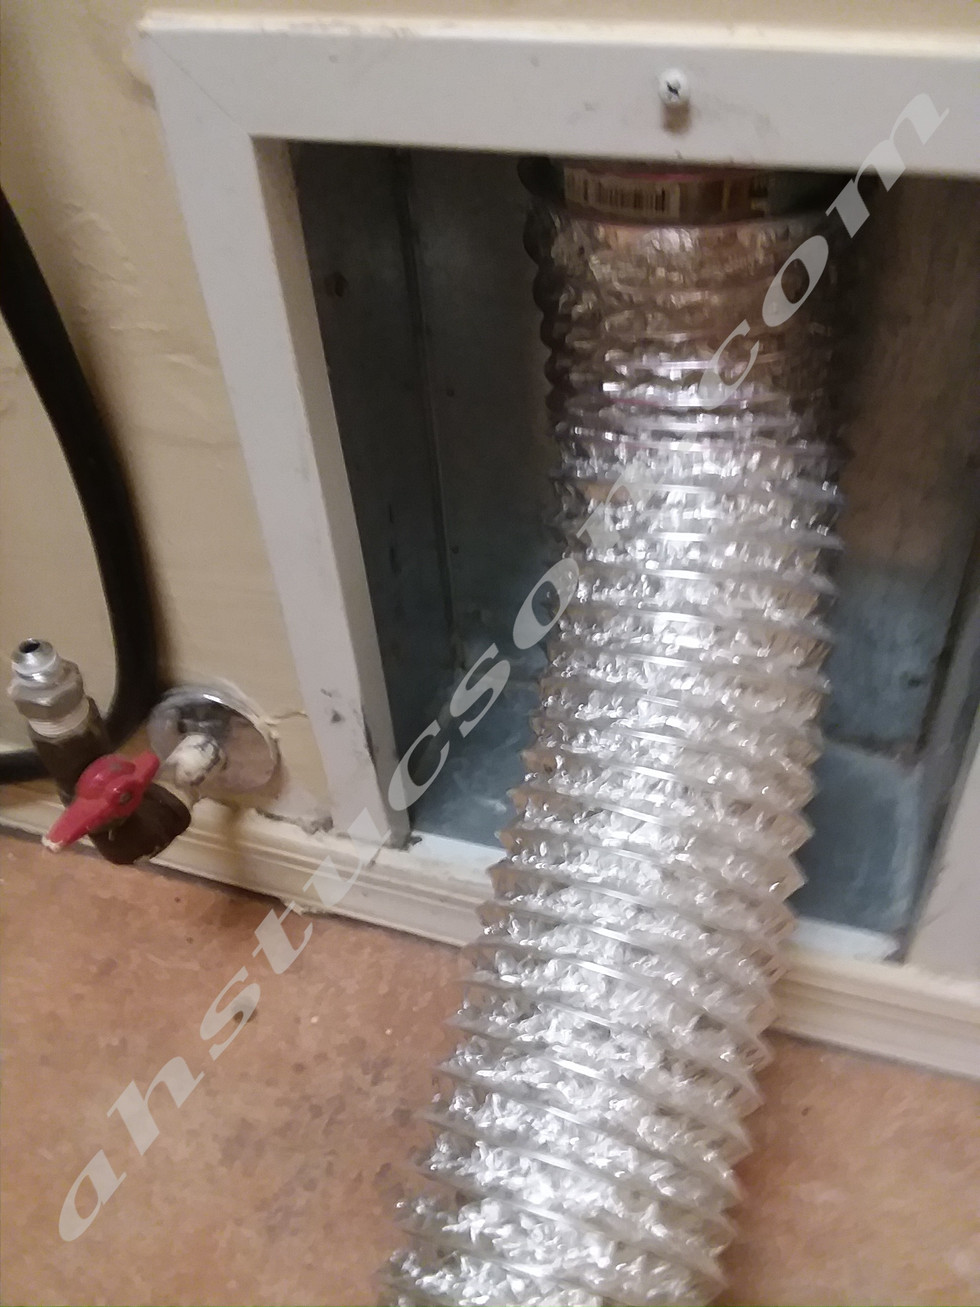 dryer-vent-cleaning-20171008_141104.jpg